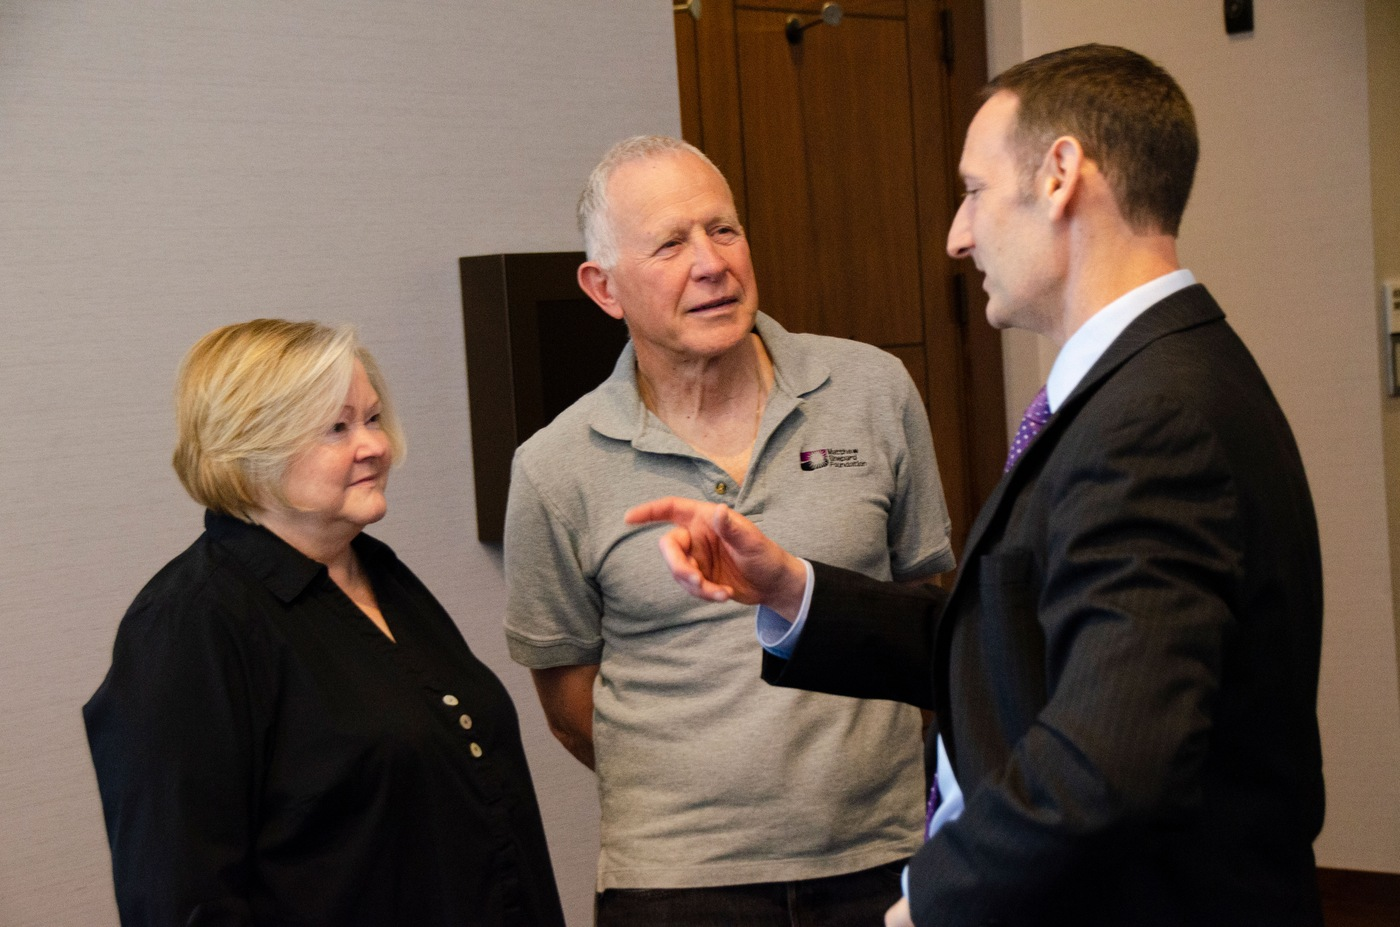 Deputy Assistant Director Jay Greenberg speaks with Judy and Dennis Shepard during an FBI civil rights conference in Denver on June 9, 2021. The couple co-founded the Matthew Shepard Foundation to honor their 21-year-old son who was killed in a hate crime in Wyoming in 1998.